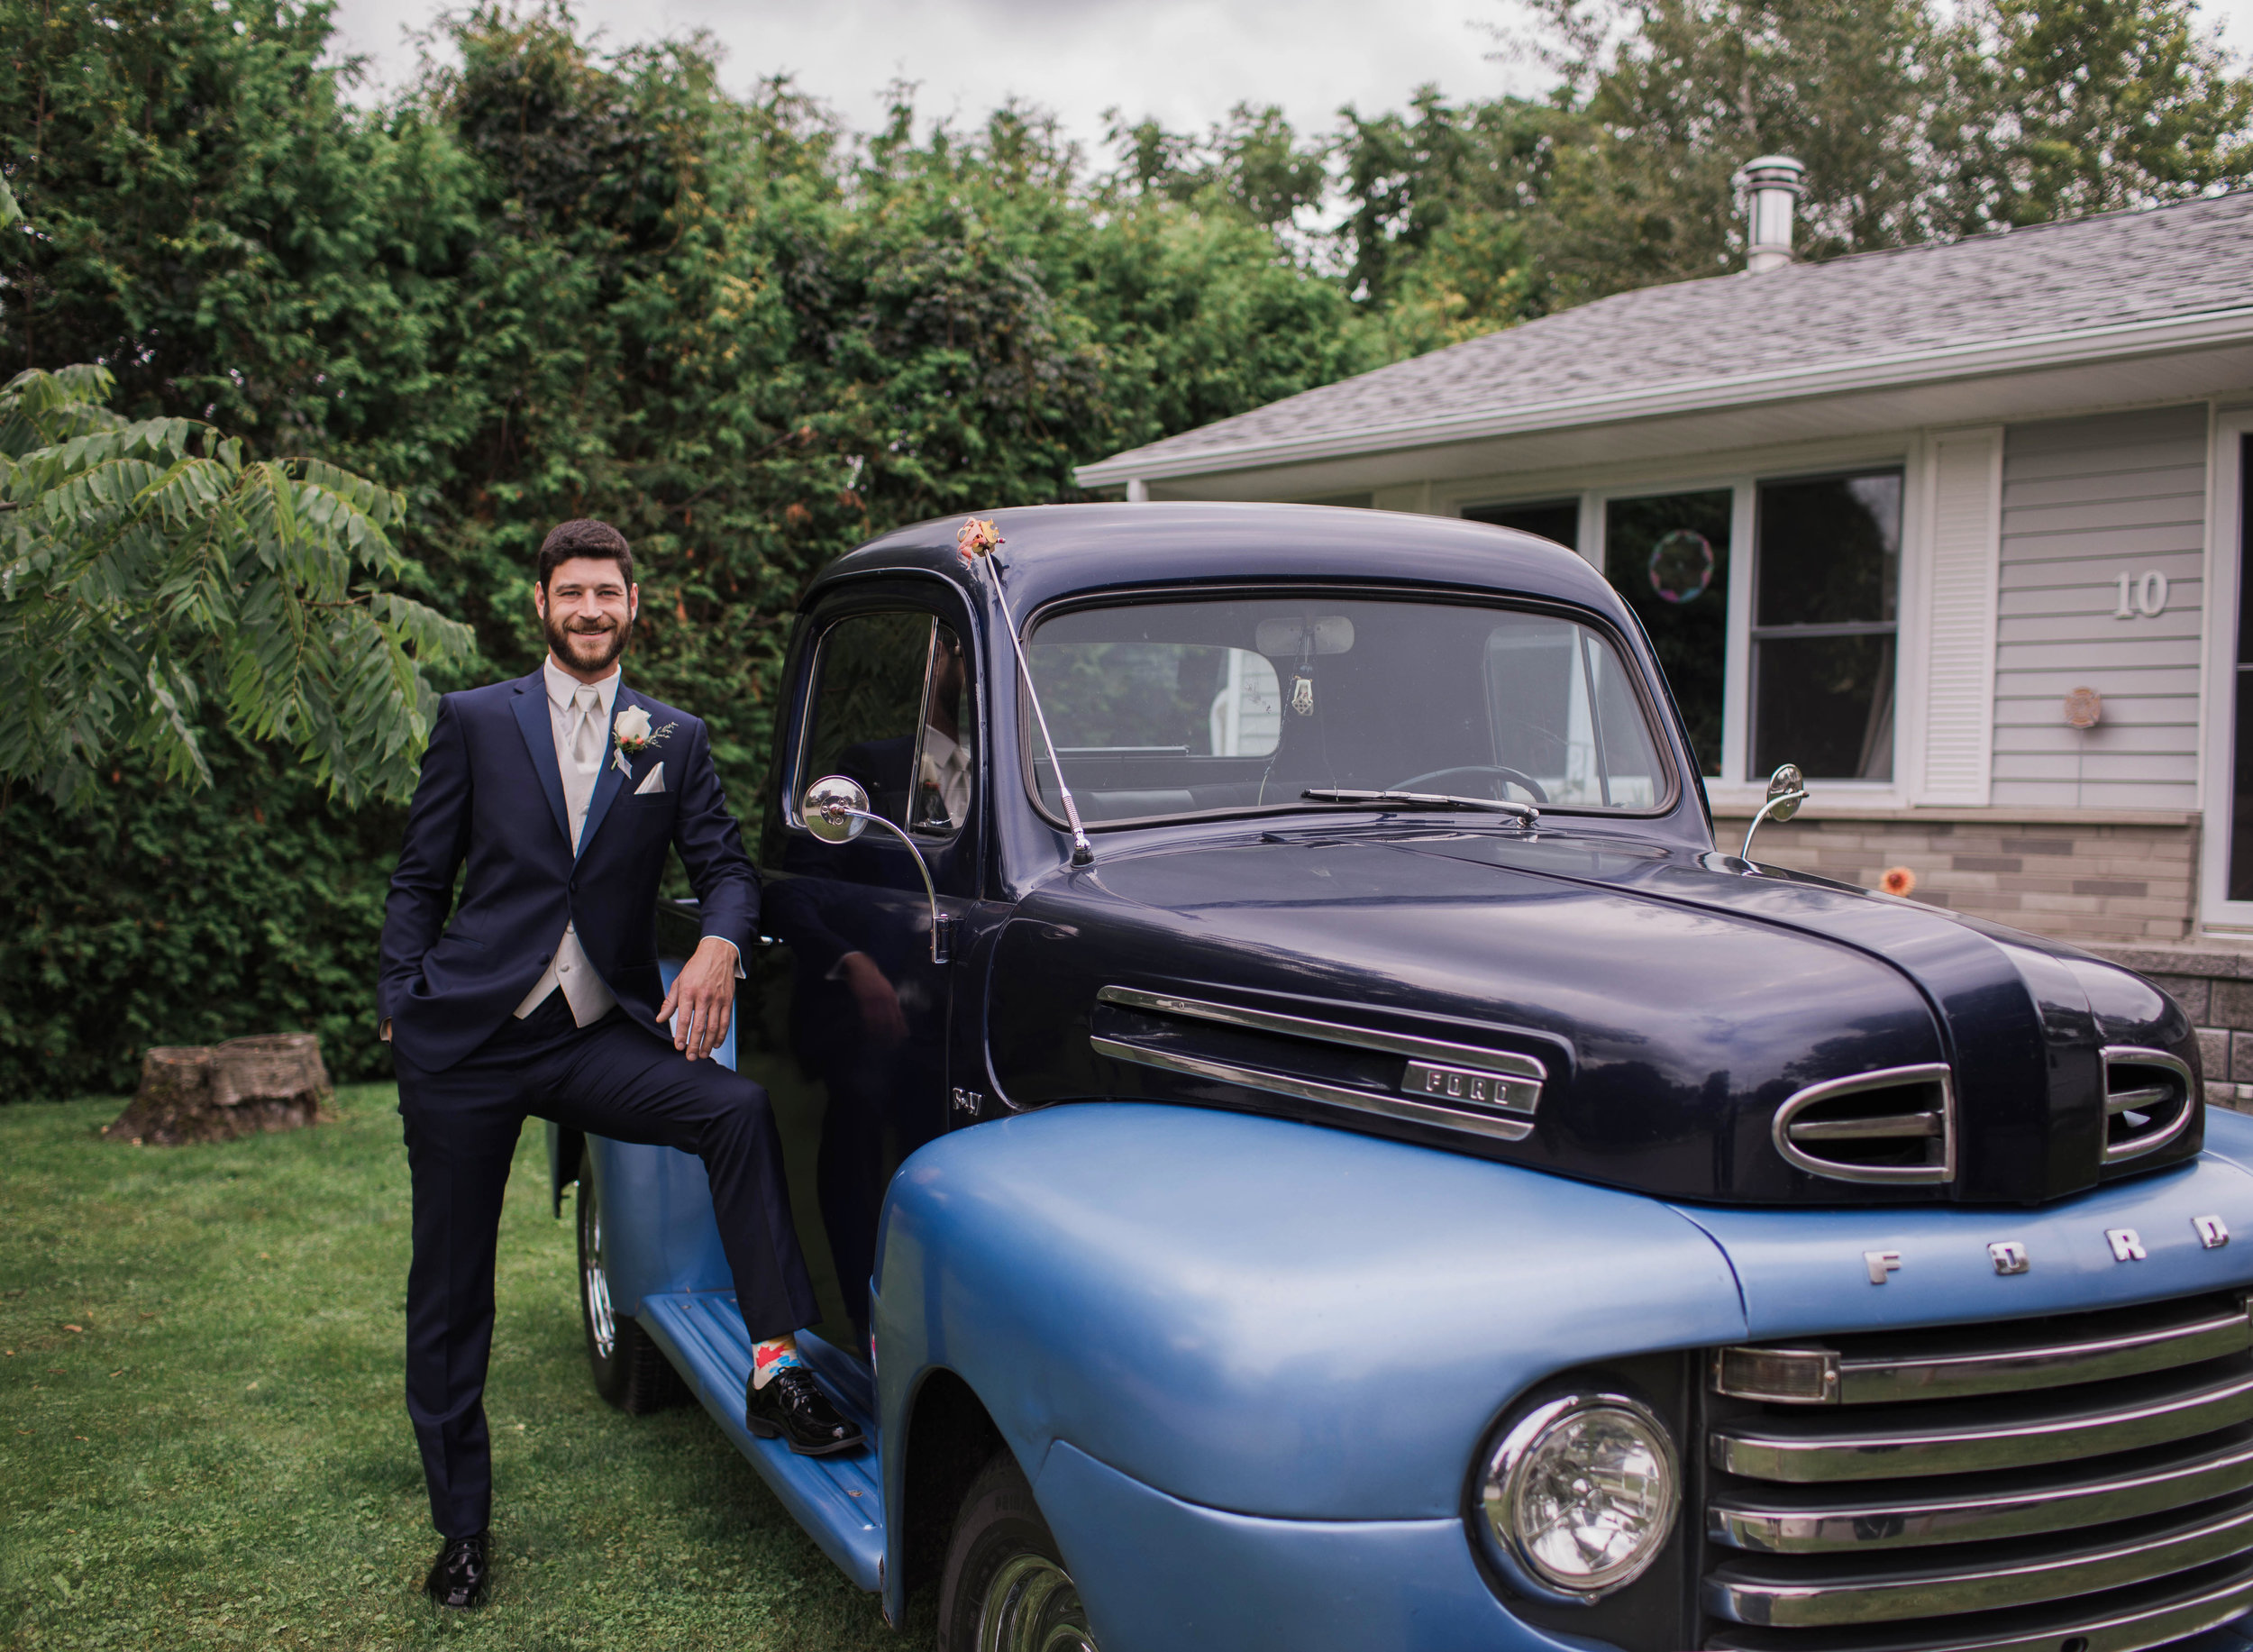 Morgan Bress Photography | Lindsay Wedding Photographer | Kawartha Lakes Wedding Photographer | Ontario Wedding Photographer |  Apple Orchard Wedding, Old truck, blue truck, wedding trucks